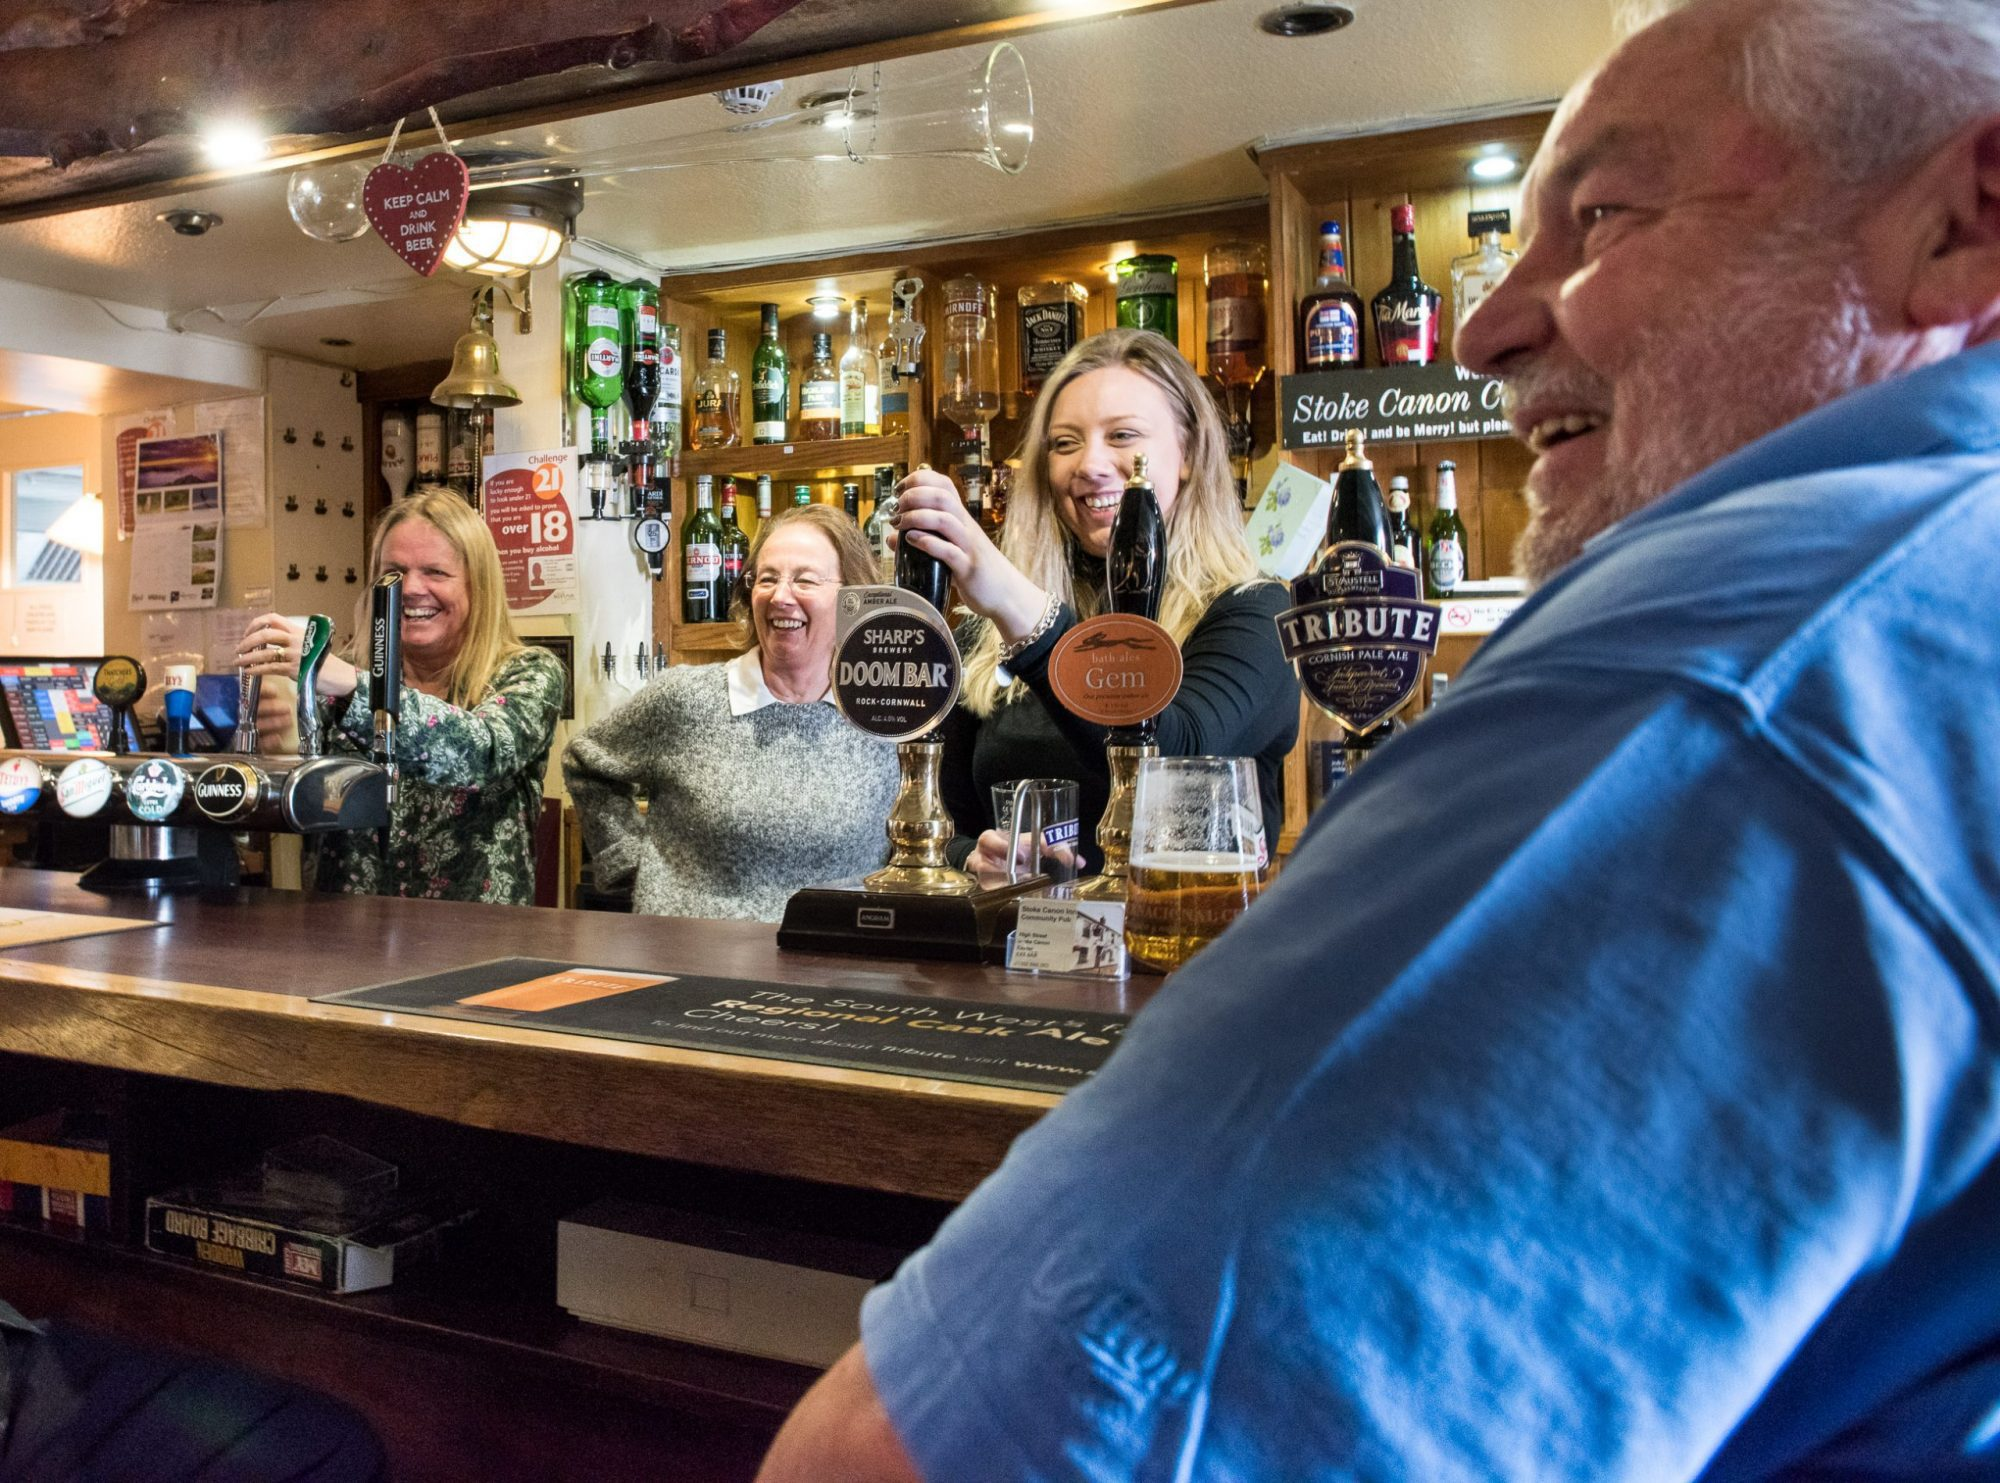 Community pubs and shops booming against backdrop of closures